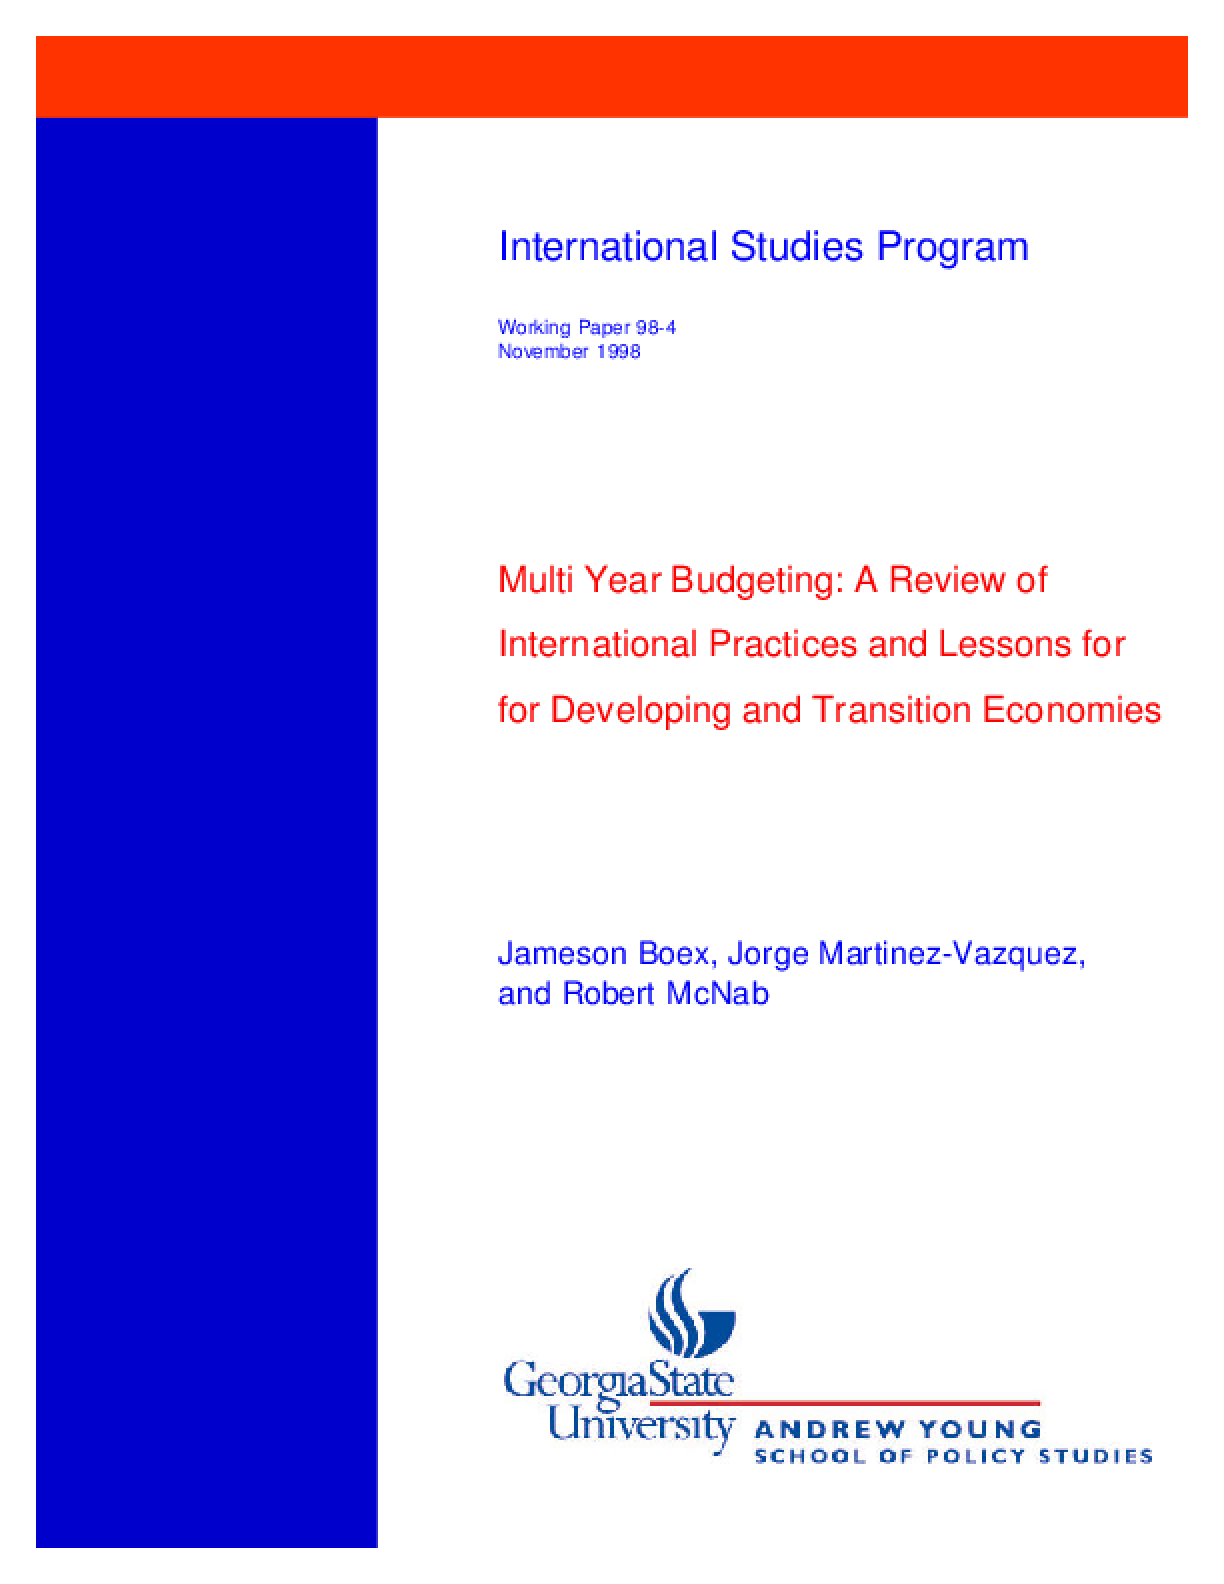 Multi-Year Budgeting: a Review of International Practices and Lessons for Developing and Transitional Economies